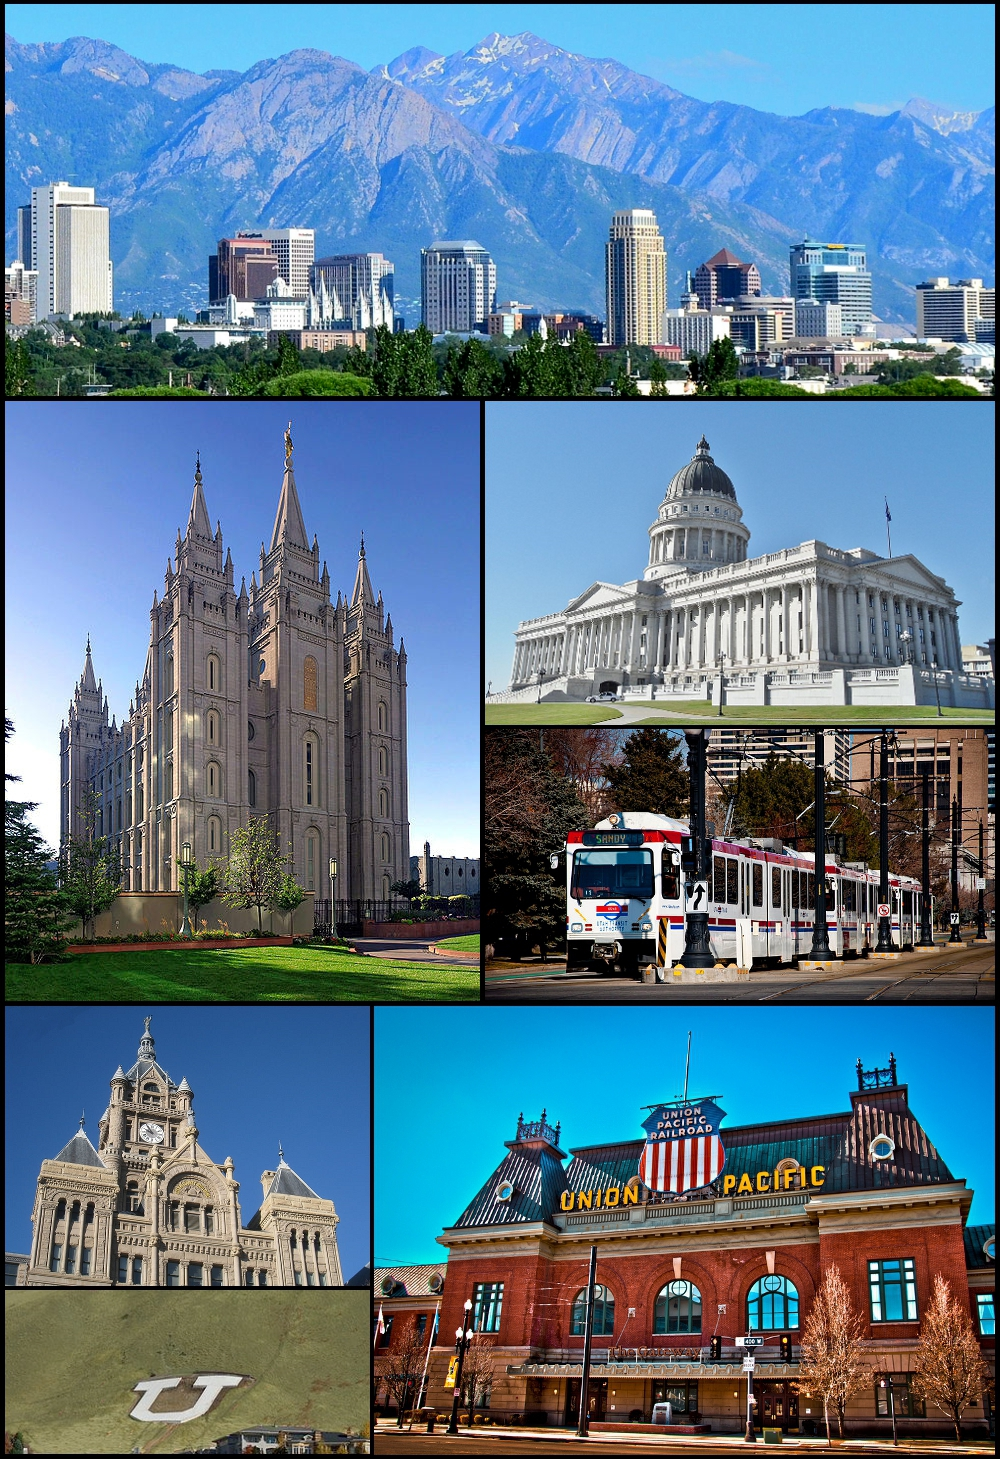 Salt Lake City - Wikipedia, the free encyclopedia